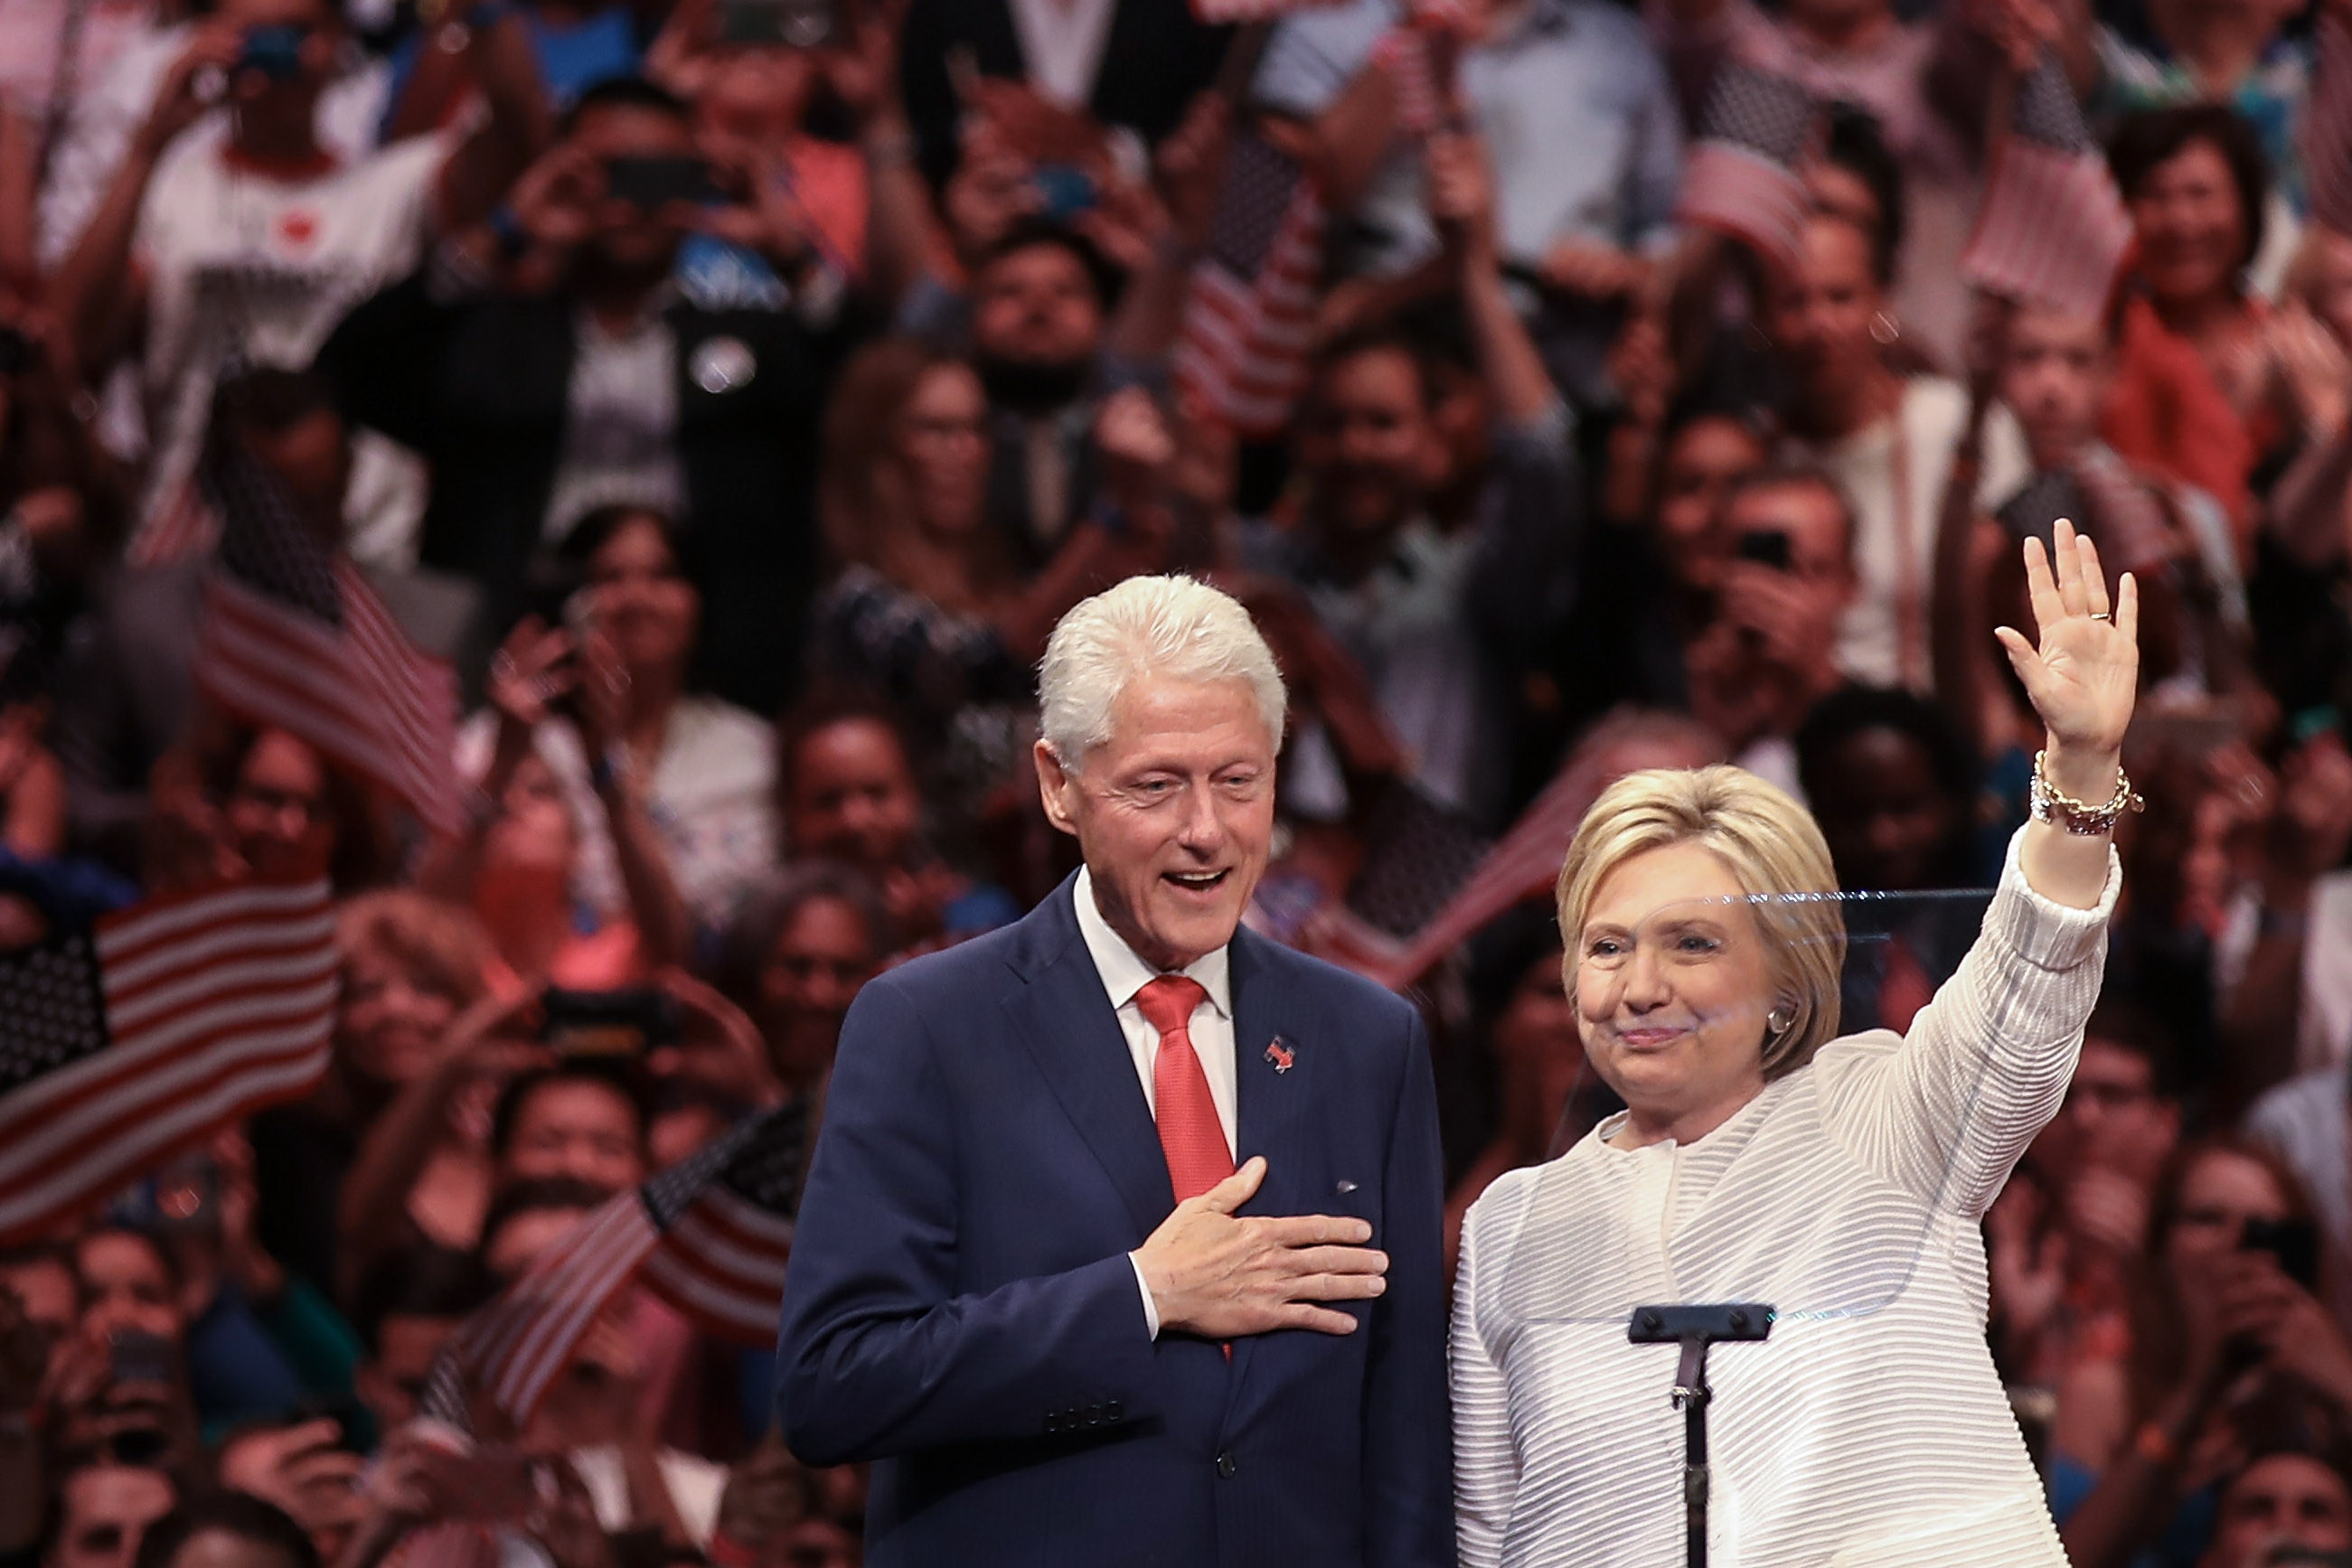 Husband and former president Bill Clinton and Democratic presidential candidate Hillary Clinton acknowledge the crowd during a primary night rally at the Duggal Greenhouse in the Brooklyn Navy Yard, June 7, 2016. (Getty Images)